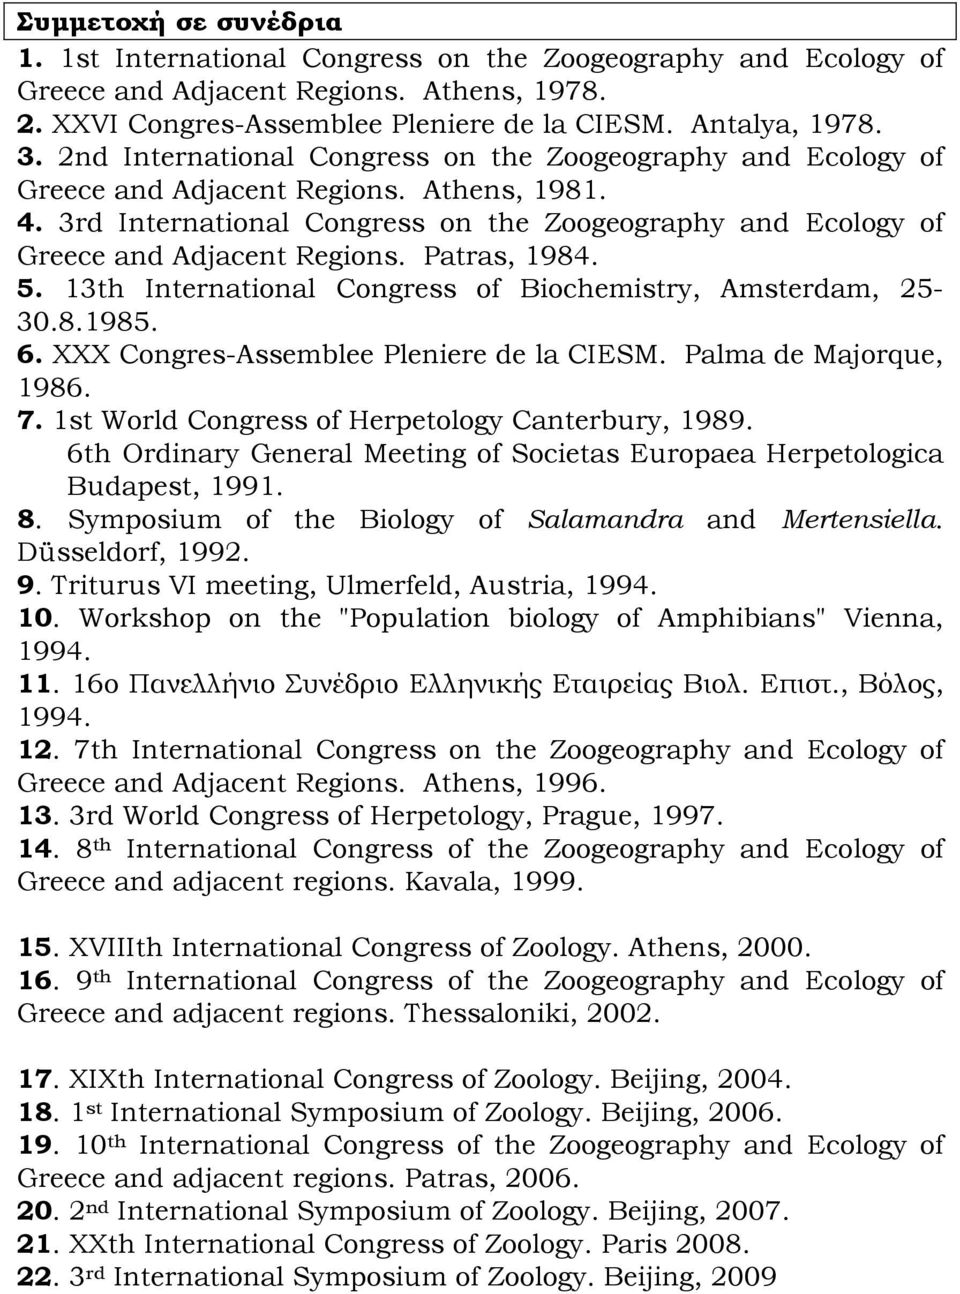 Patras, 1984. 5. 13th International Congress of Biochemistry, Amsterdam, 25-30.8.1985. 6. XXX Congres-Assemblee Pleniere de la CIESM. Palma de Majorque, 1986. 7.